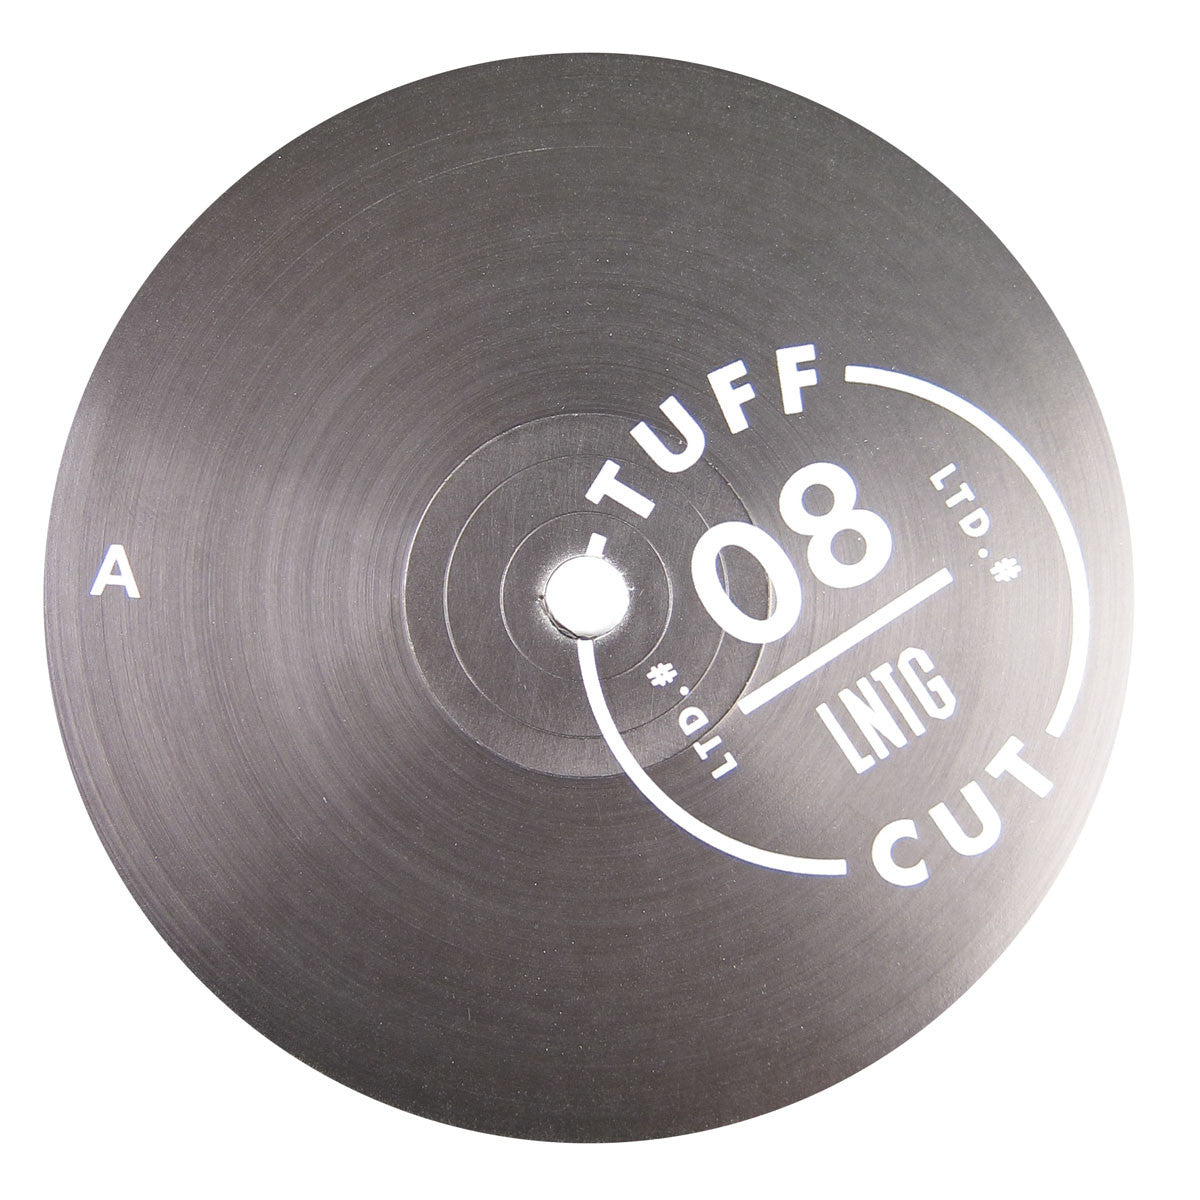 Late Nite Tuff Guy: Tuff Cut 08 (Hall & Oates, Marvin Gaye, Fleetwood Mac, Michael Jackson) Vinyl 12""